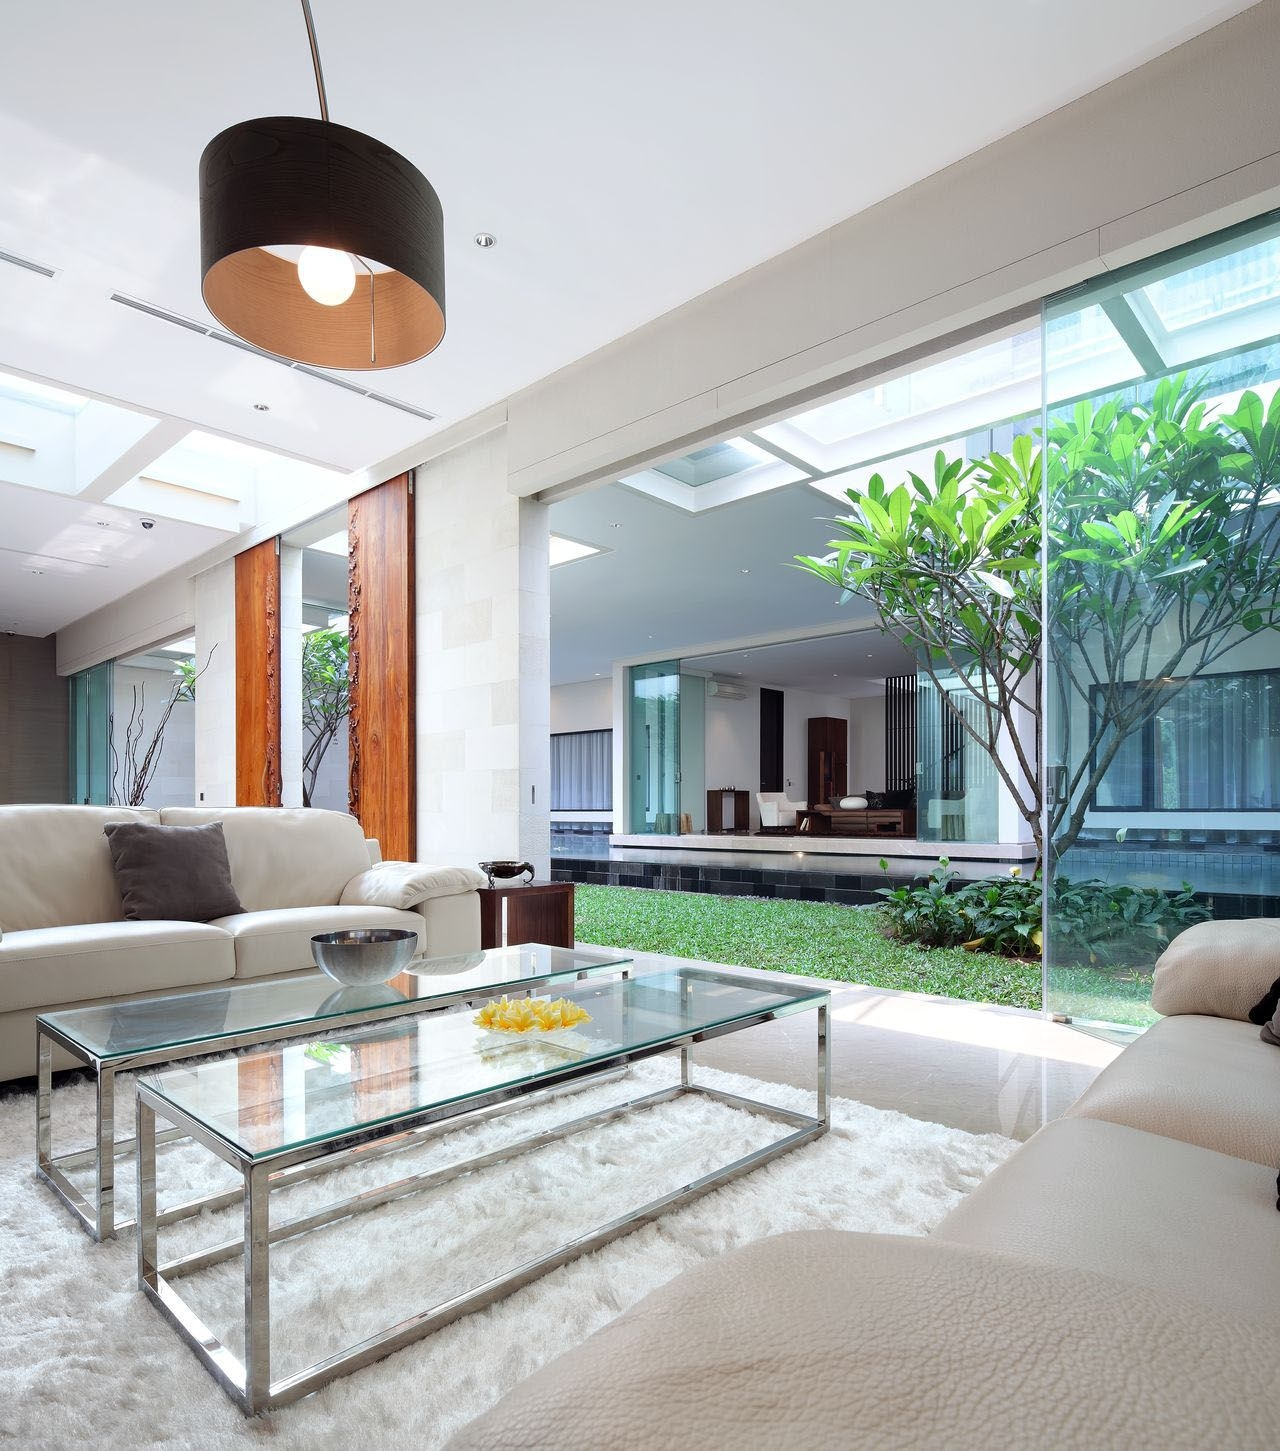 Luxury Garden House In Jakarta  Idesignarch  Interior Design Architecture  Interior